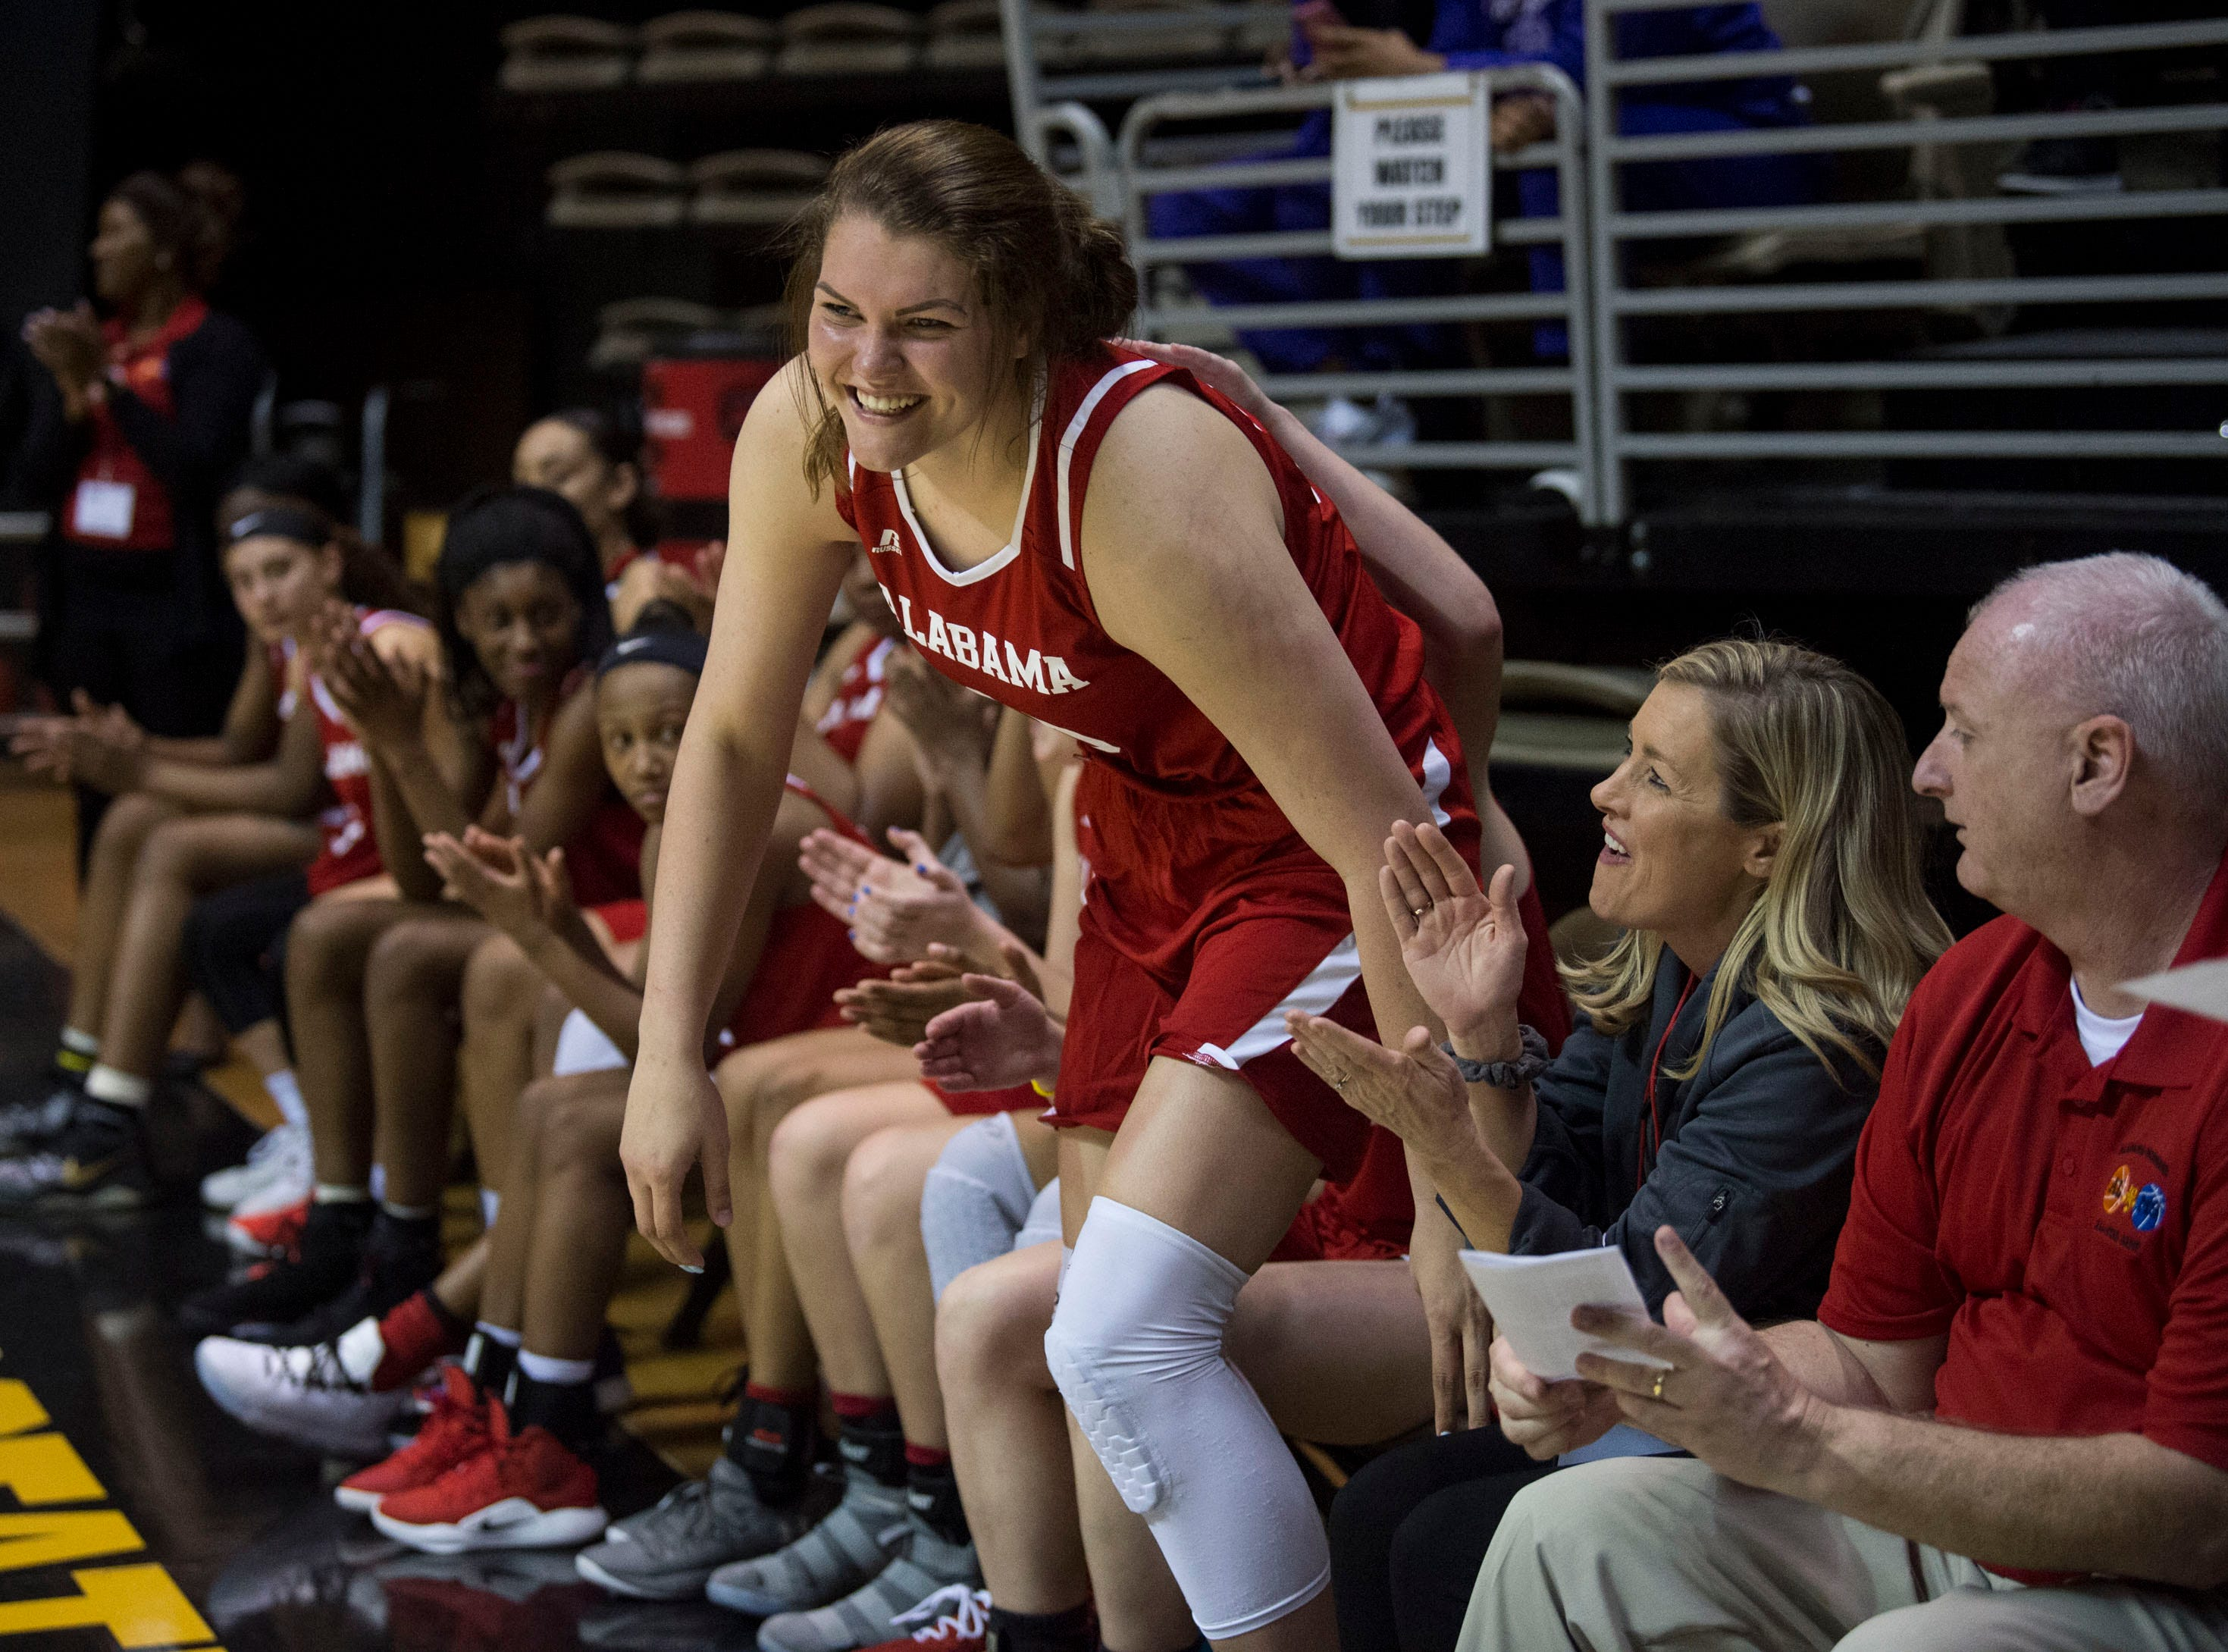 Alabama's River Baldwin (30) is announced as the Alabama teams MVP during the Alabama-Mississippi All-Star game at the Dunn-Oliver Acadome in Montgomery, Ala., on Friday, March 15, 2019. Alabama All-stars defeated the Mississippi All-stars 101-82.